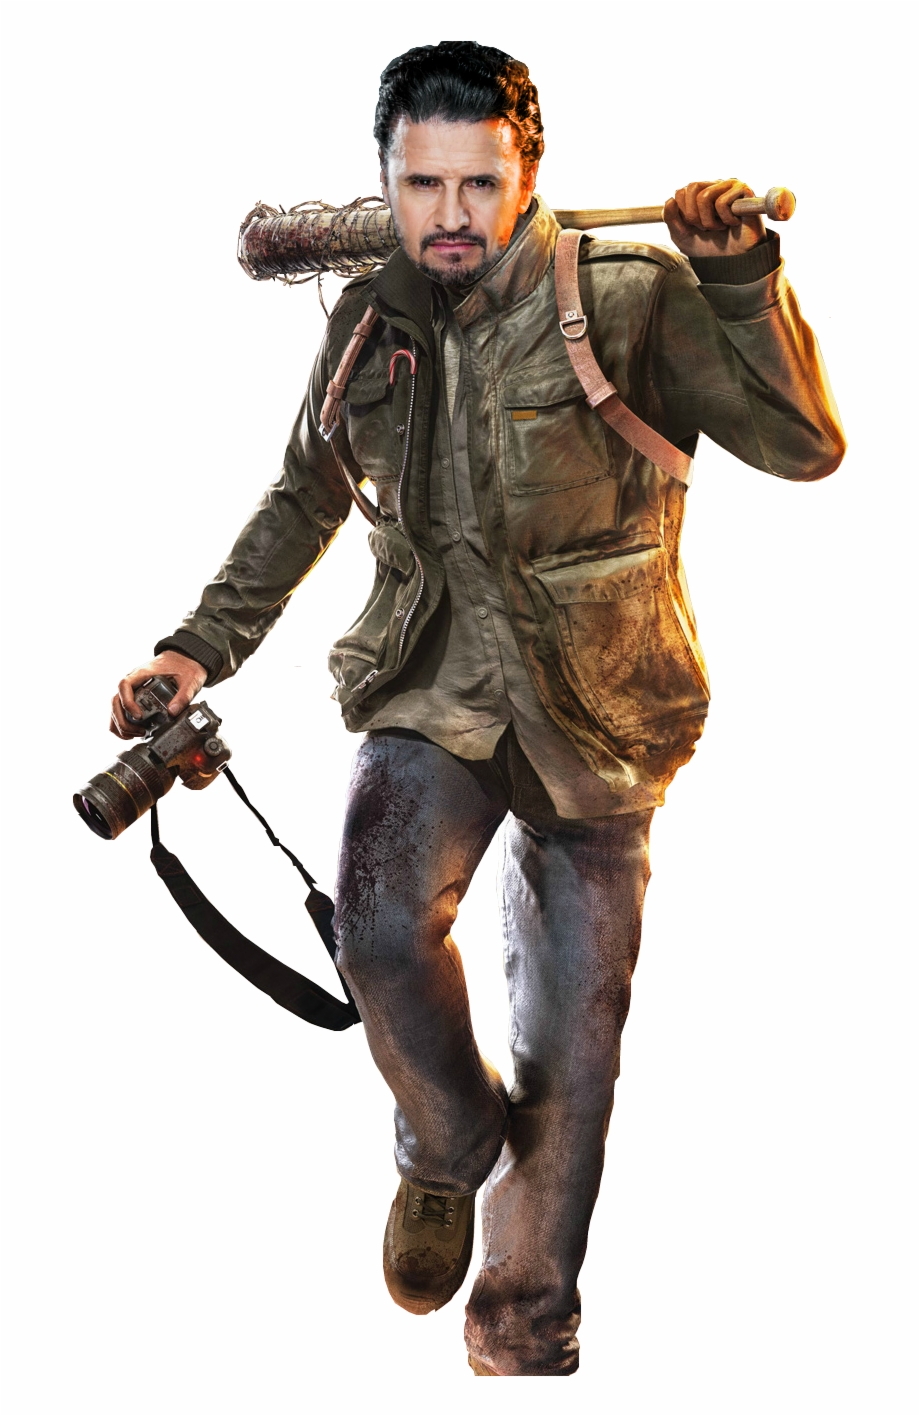 Dead rising 4 clipart jpg free library Terence West - Dead Rising 4 Frank West Png Free PNG Images ... jpg free library